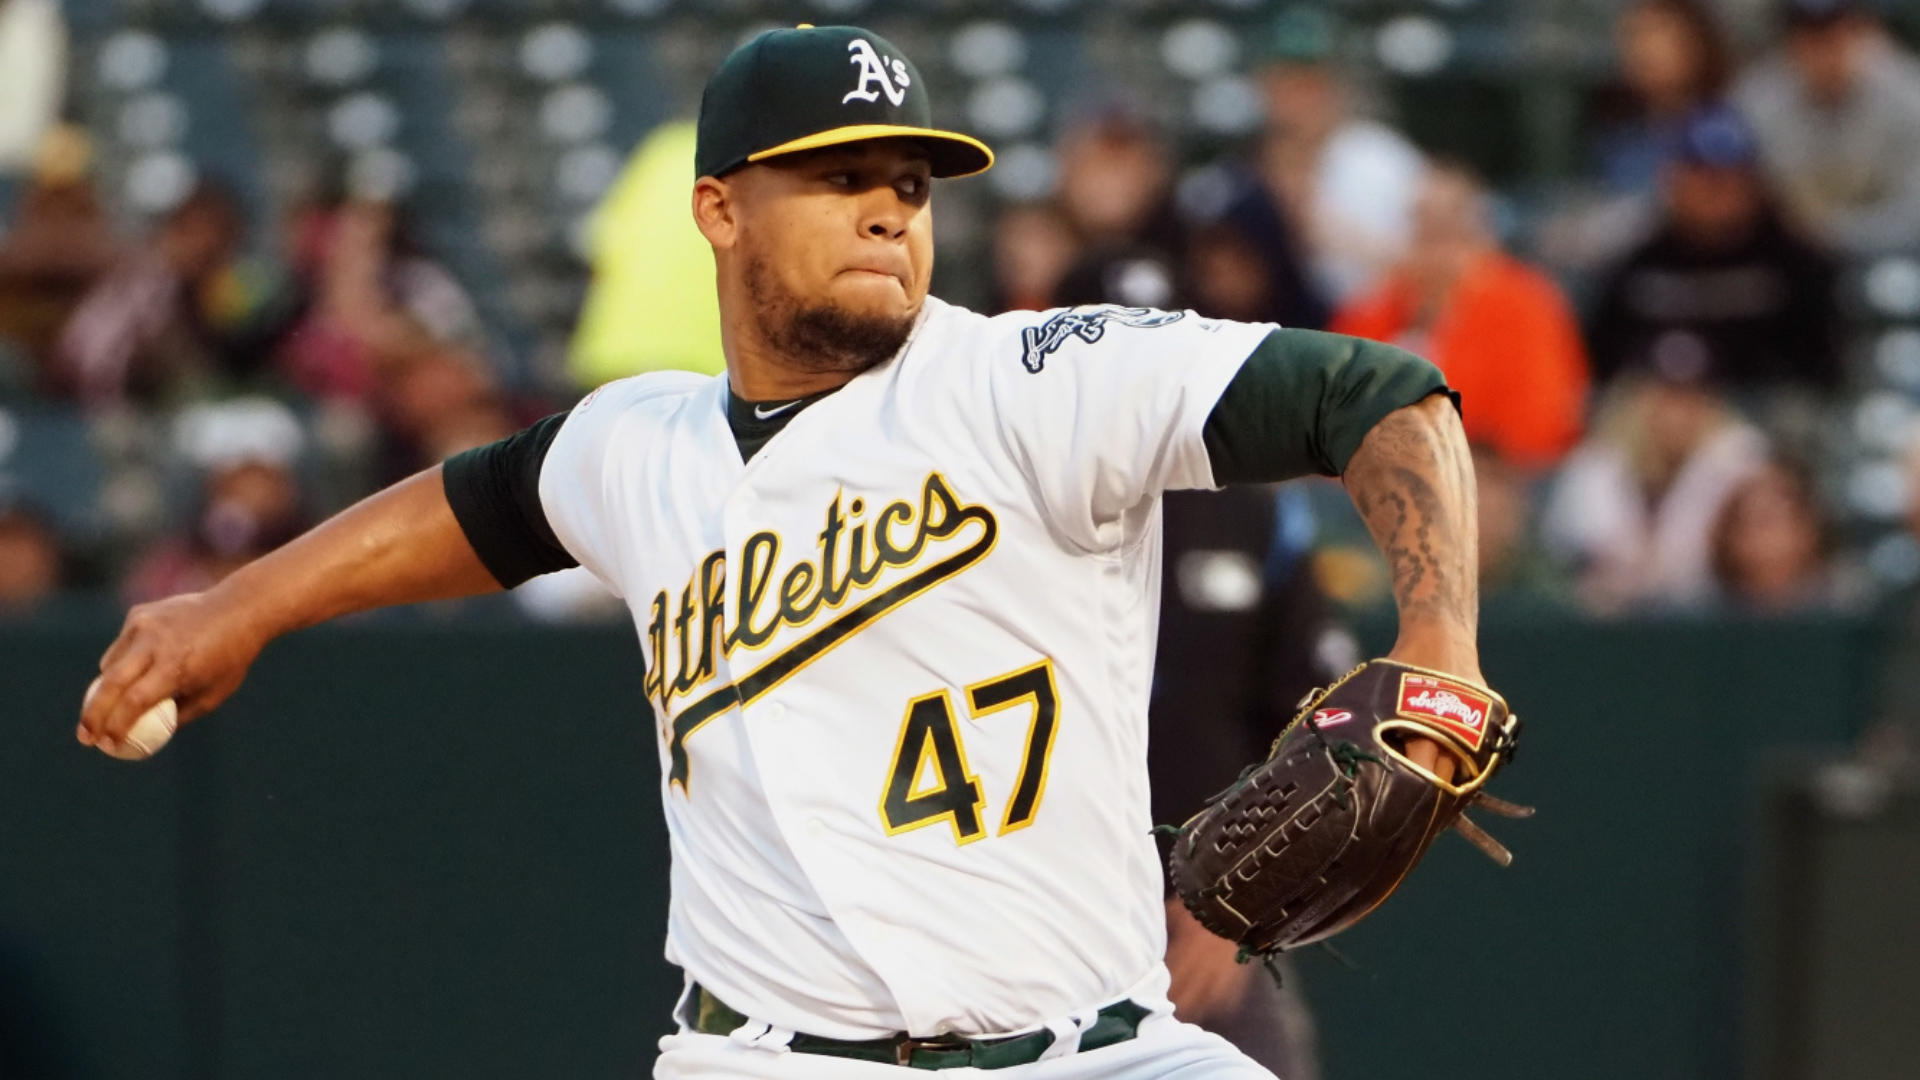 Fantasy Baseball: Five pitchers making changes that could propel them to stardom